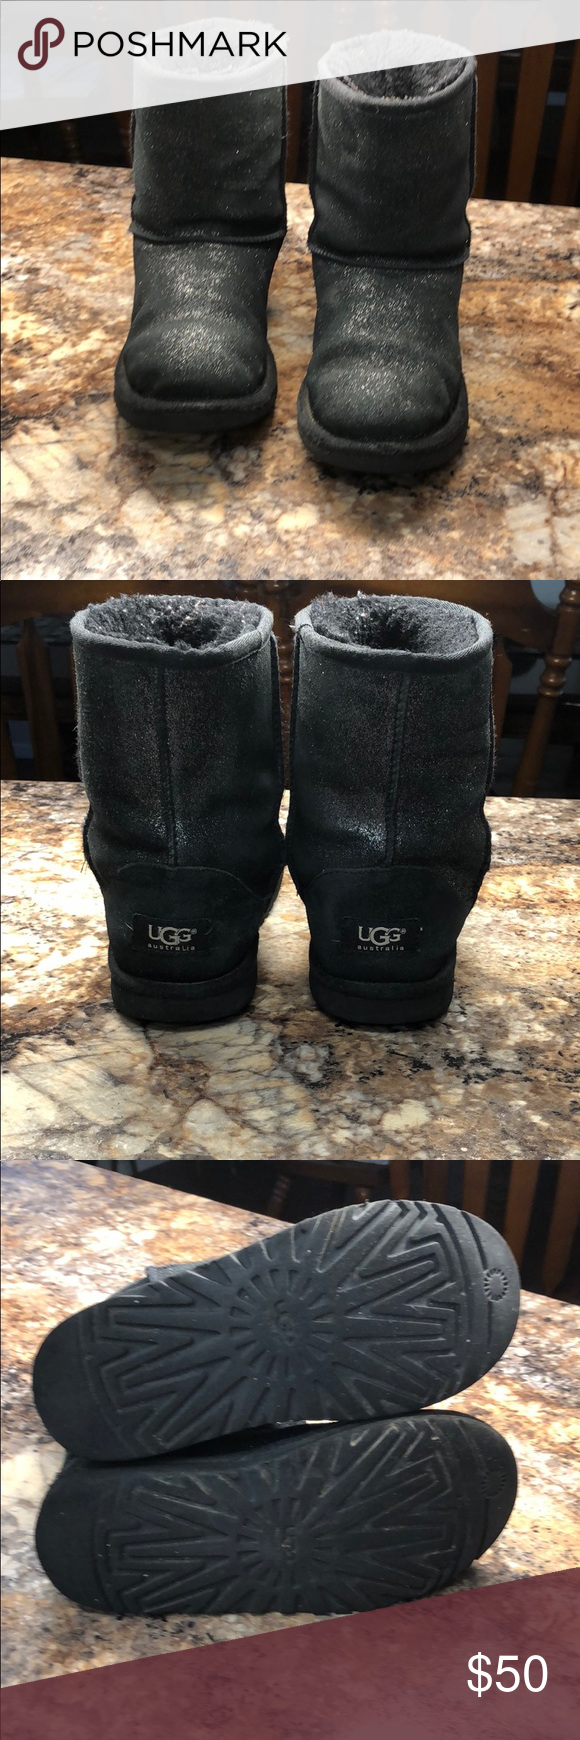 UGGS black glitter boots USA 4 UGGS black glitter boots USA 4  Authentic UGG boots. Good condition. The outside has some fading of leather. No rips, tears or significant damage seen. Normal wear due to use. Soles are in good condition but they do show some wear. Please see pictures UGG Shoes Boots #uggbootsoutfitblackgirl